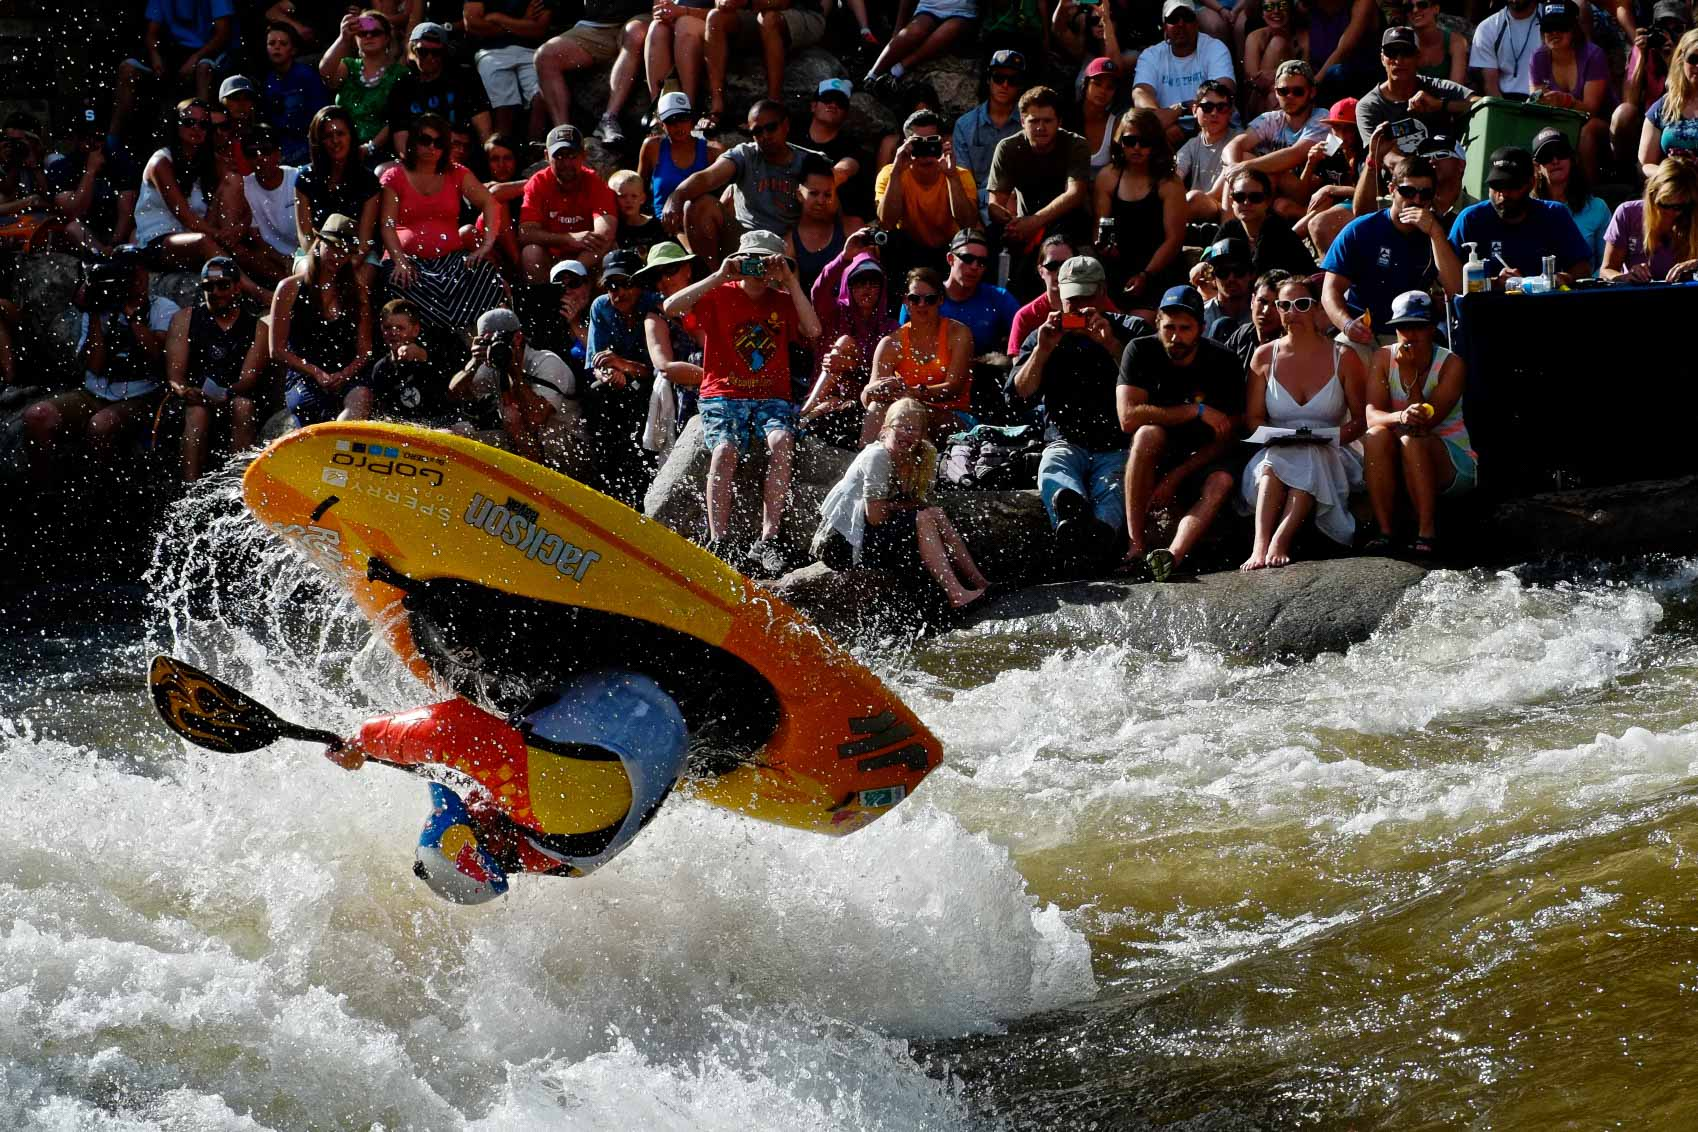 Dane Jackson, of Rock Island, Tennessee, competes in front of a crowd of hundreds during the GoPro Mountain Games' kayak freestyle finals in Vail, Colo. on Saturday, June 7, 2014. Jackson finished in first place.